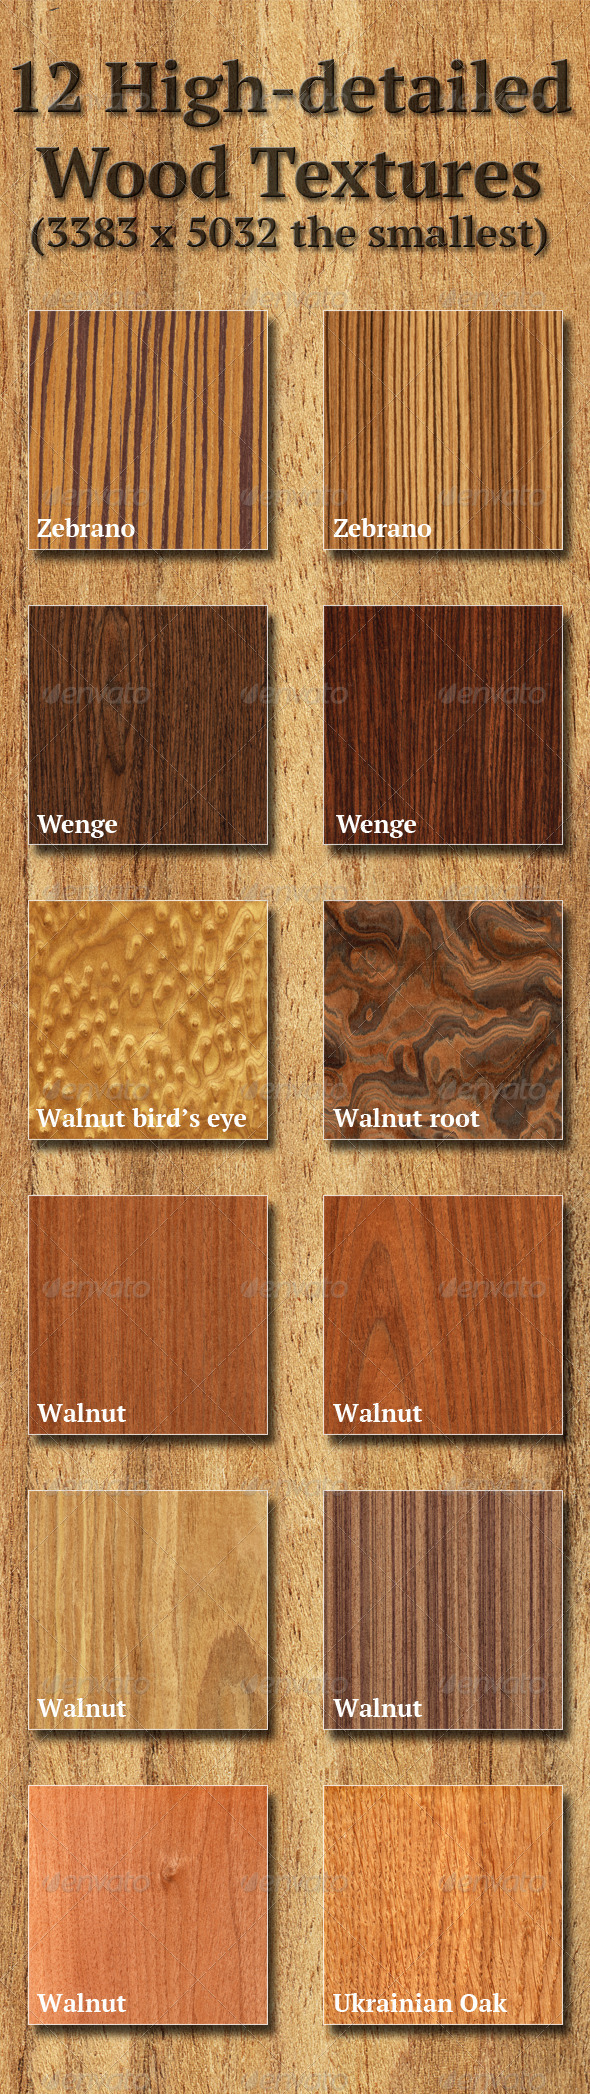 High-Detailed Wood Textures Set 4 - Wood Textures